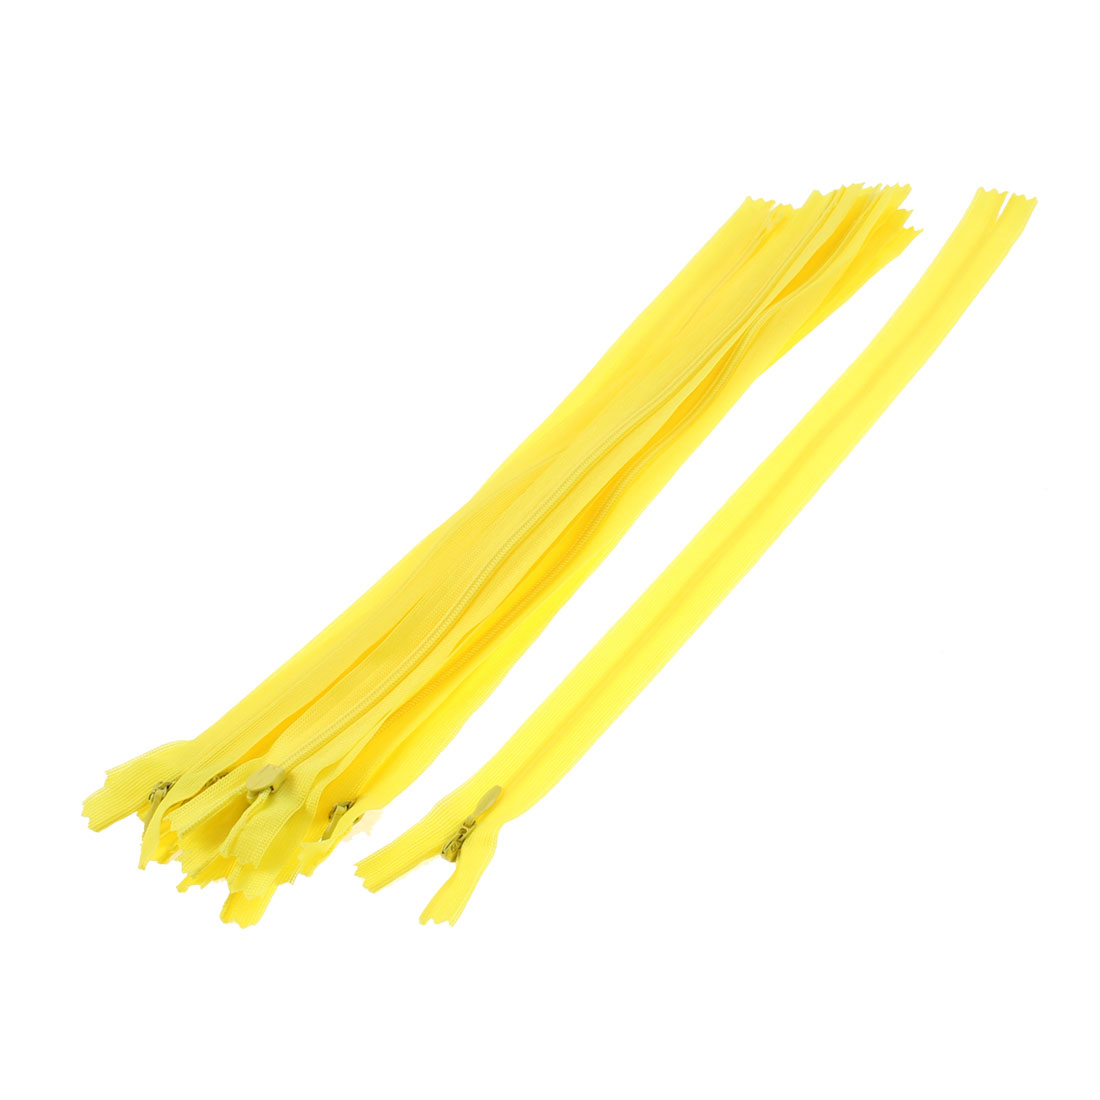 10 Pcs Yellow 30cm Length Nylon Zippers Zips for Clothes